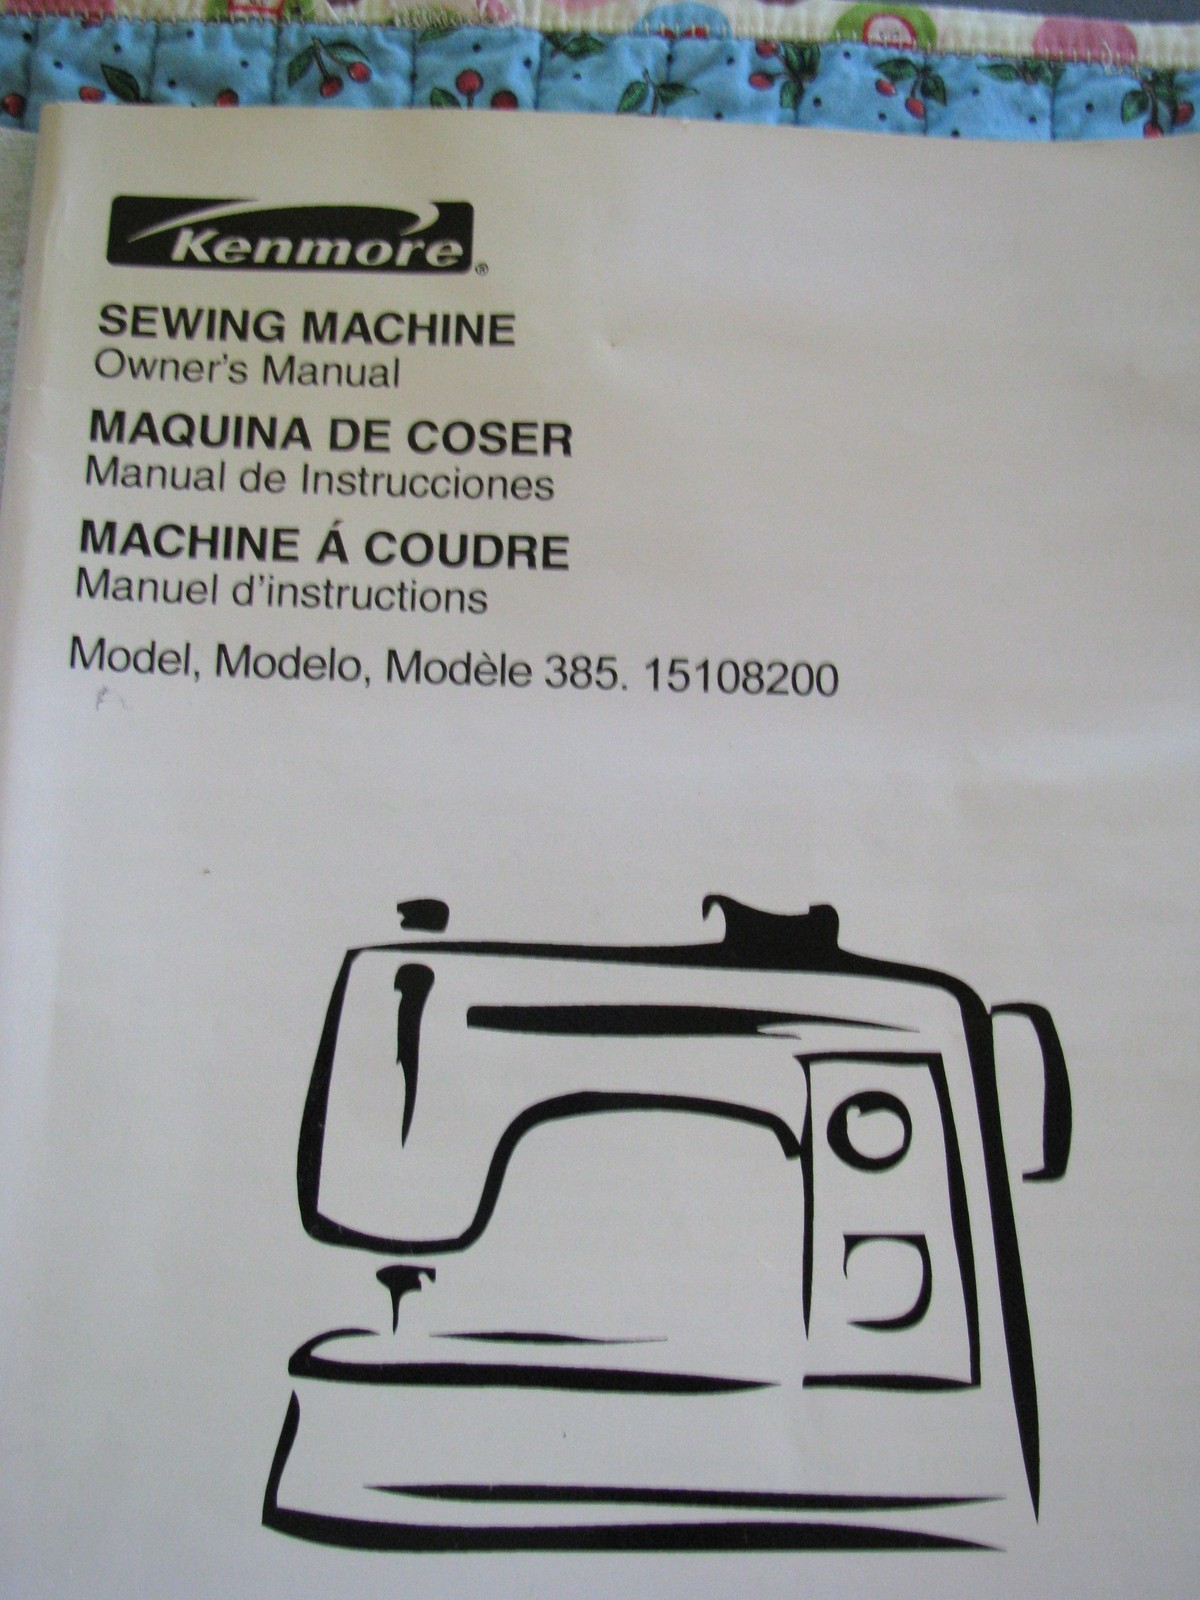 Sears Kenmore Sewing Machine Manual 385 1510 English Spanish 66 Pages -  $11.95